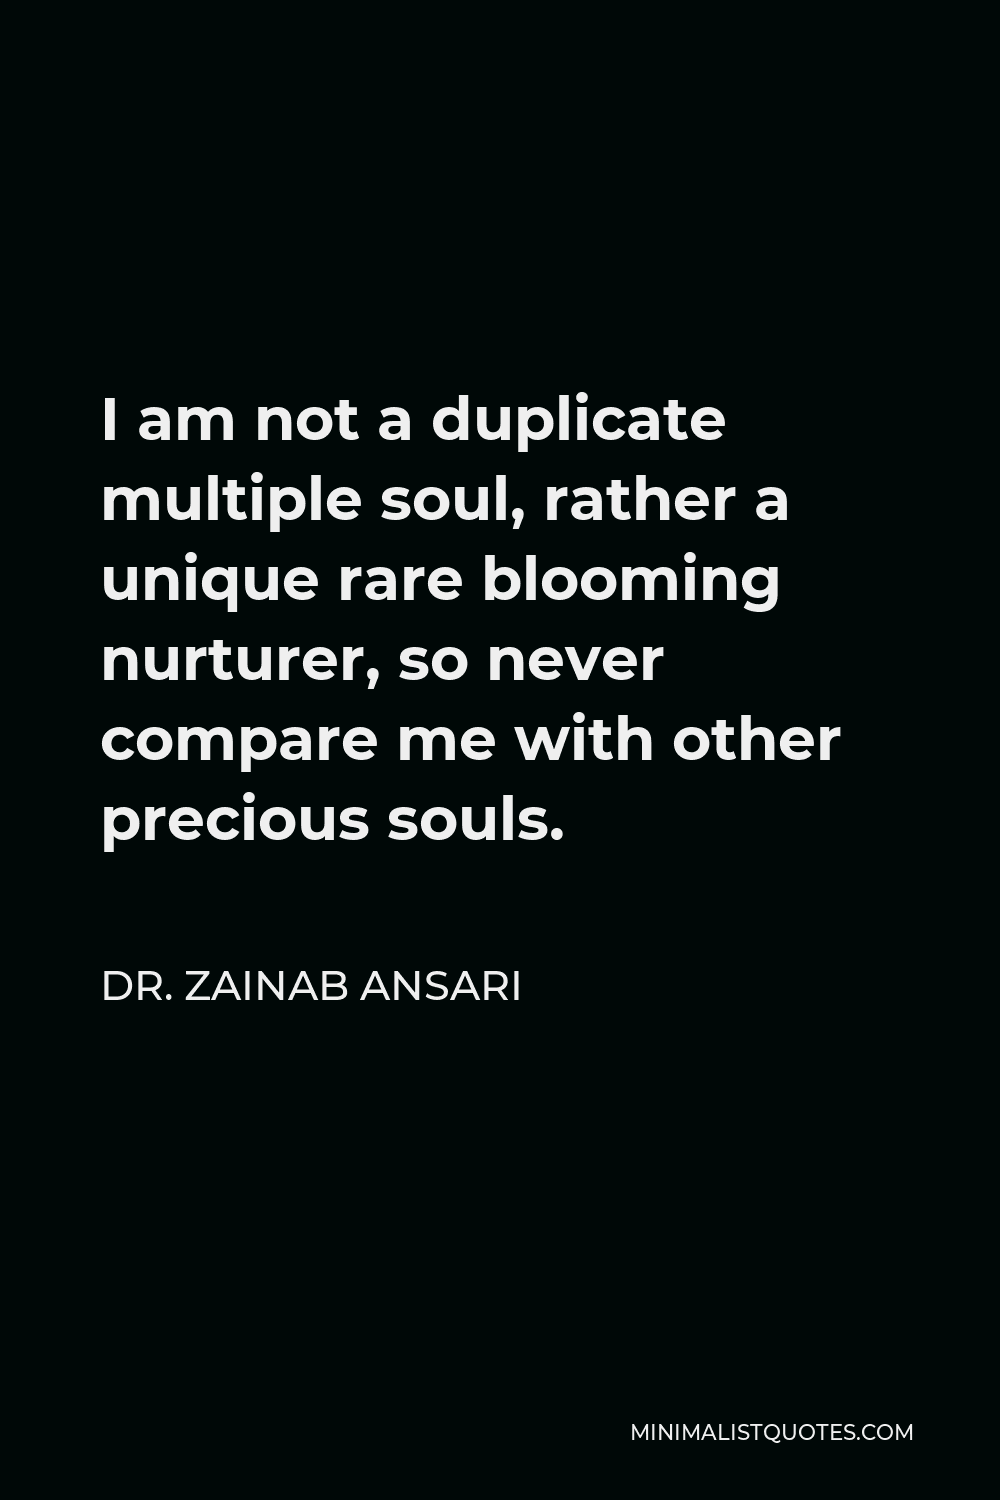 Dr. Zainab Ansari Quote - I am not a duplicate multiple soul, rather a unique rare blooming nurturer, so never compare me with other precious souls.